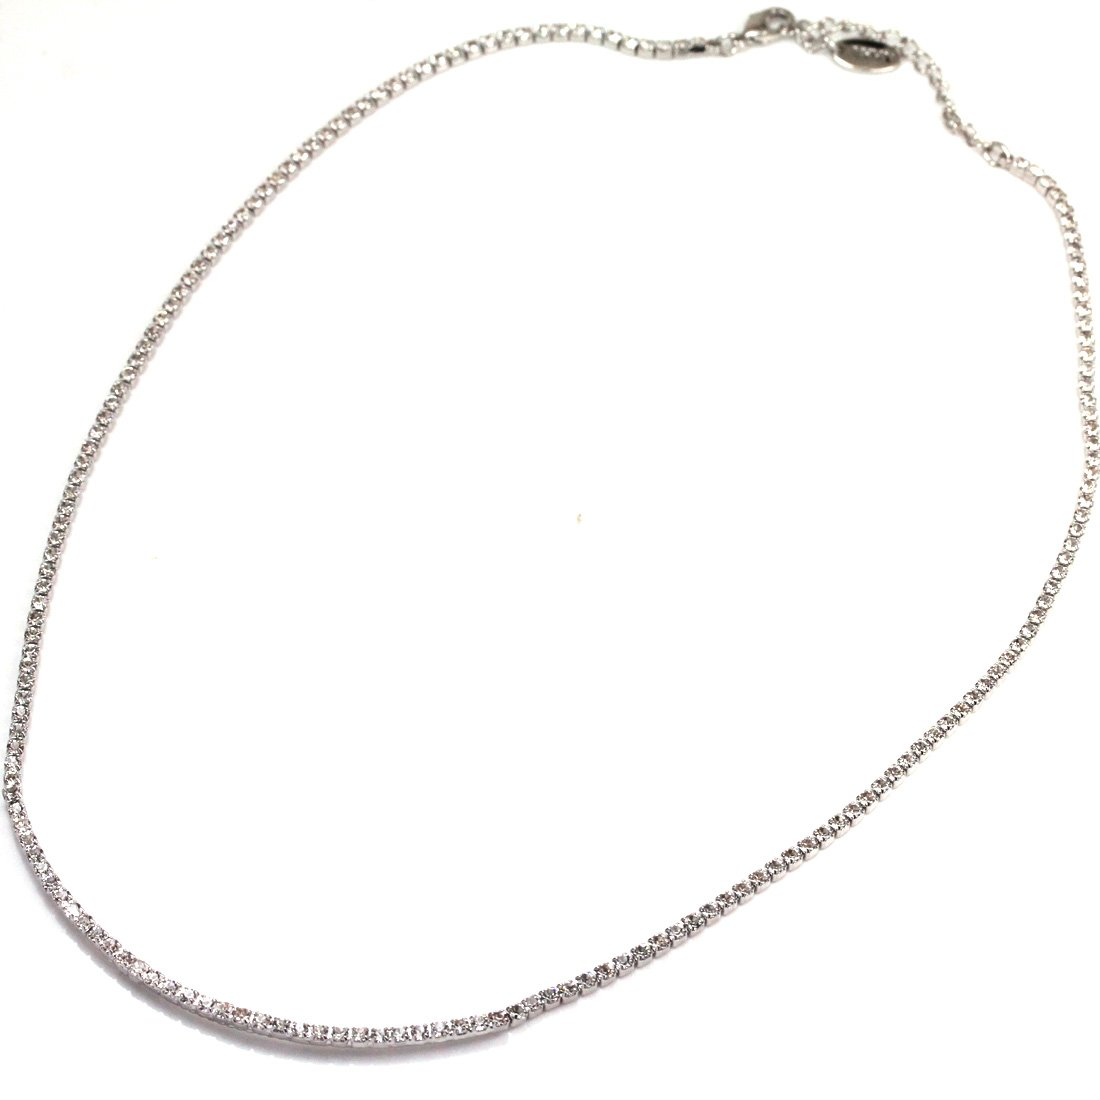 FC JORY White Gold Plated Crystal Slim CZ Tennis Chain Bridal Wedding Necklace